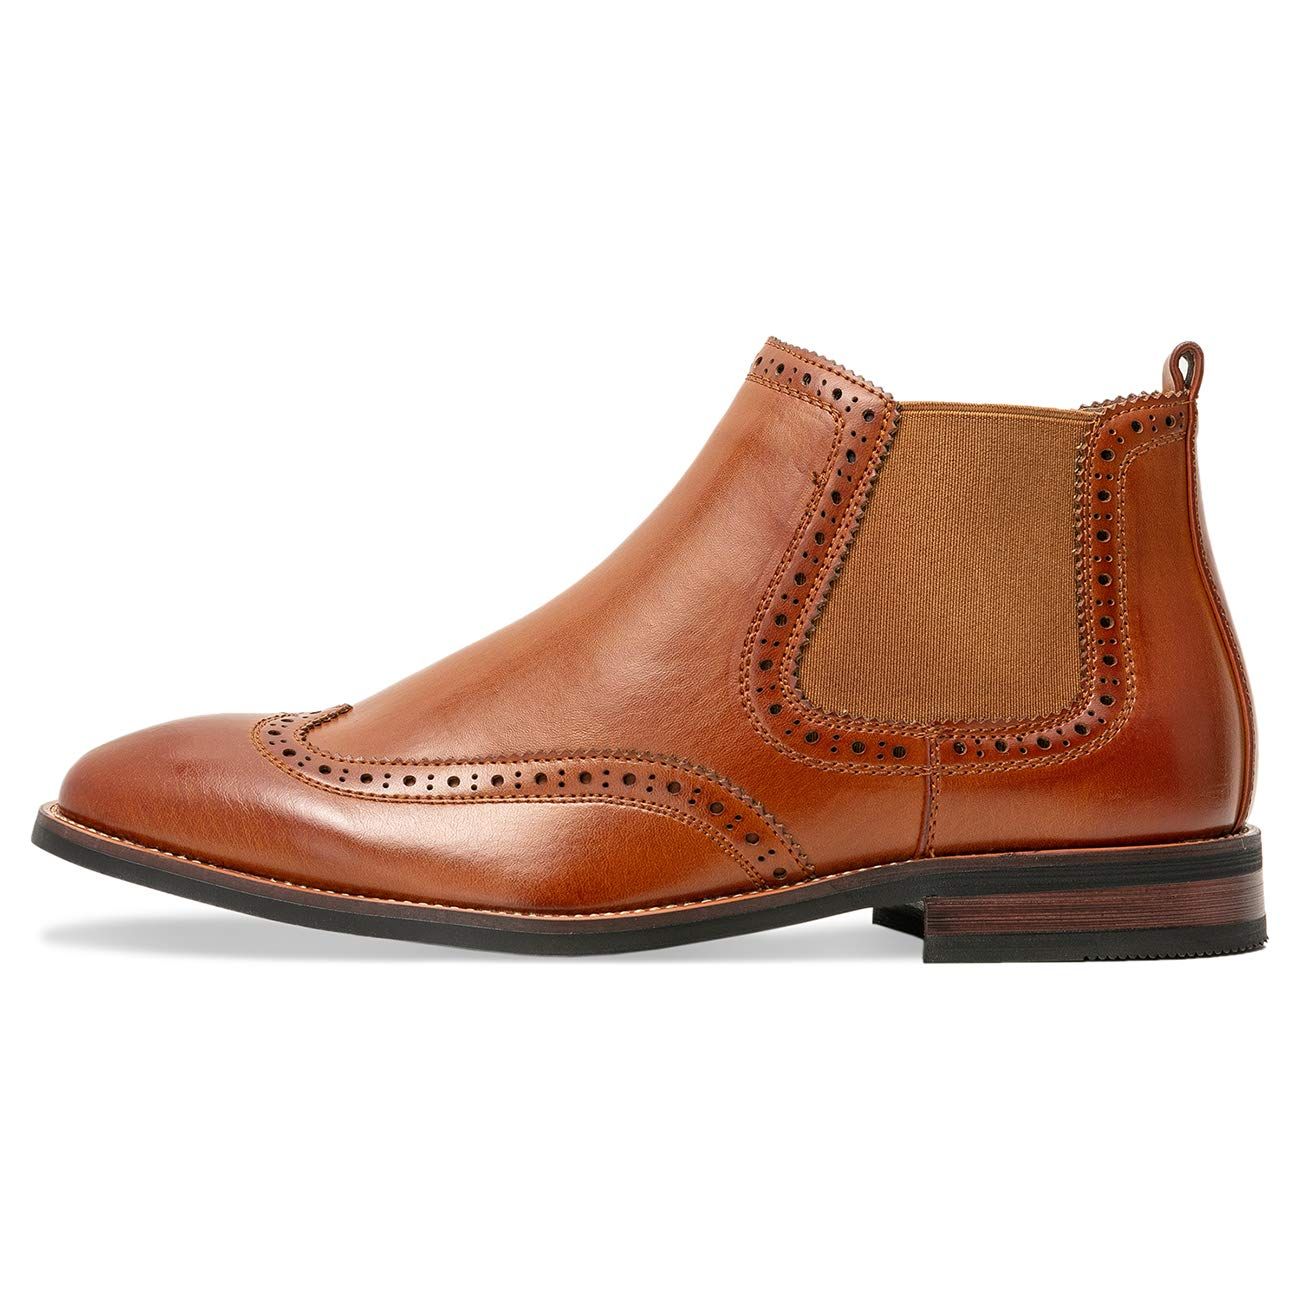 WULFUL Mens Leather Lined Oxfords Chelsea Ankle Boots